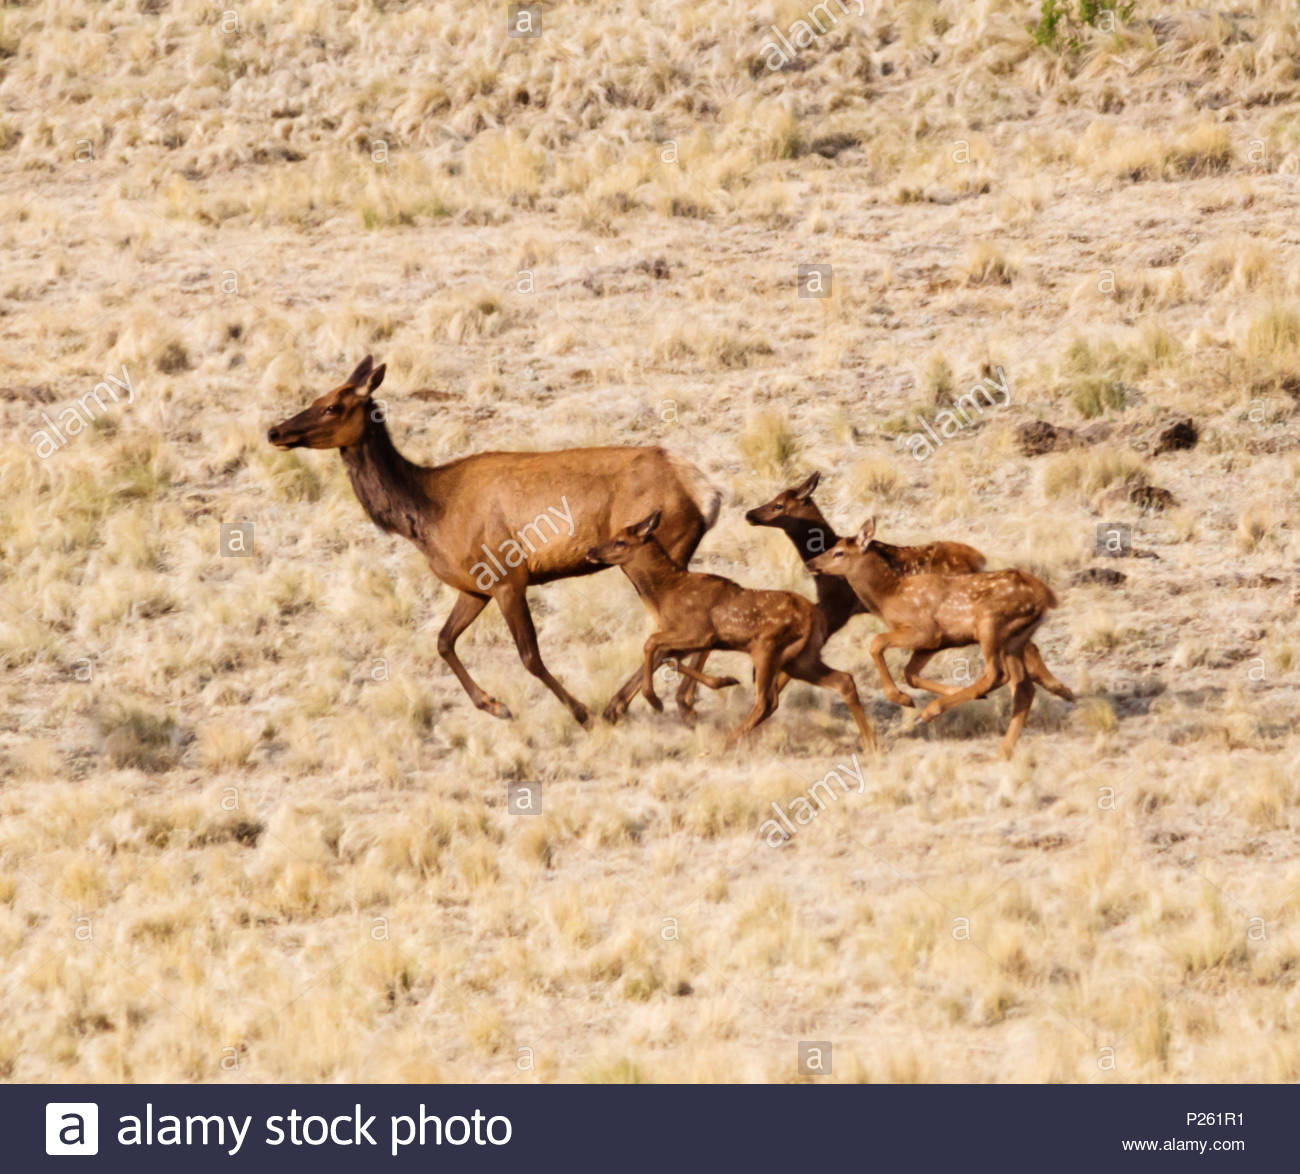 elk-cervus-elaphus-wapiti-cow-and-three-calves-running-in-arizona-usa-P261R1.jpg